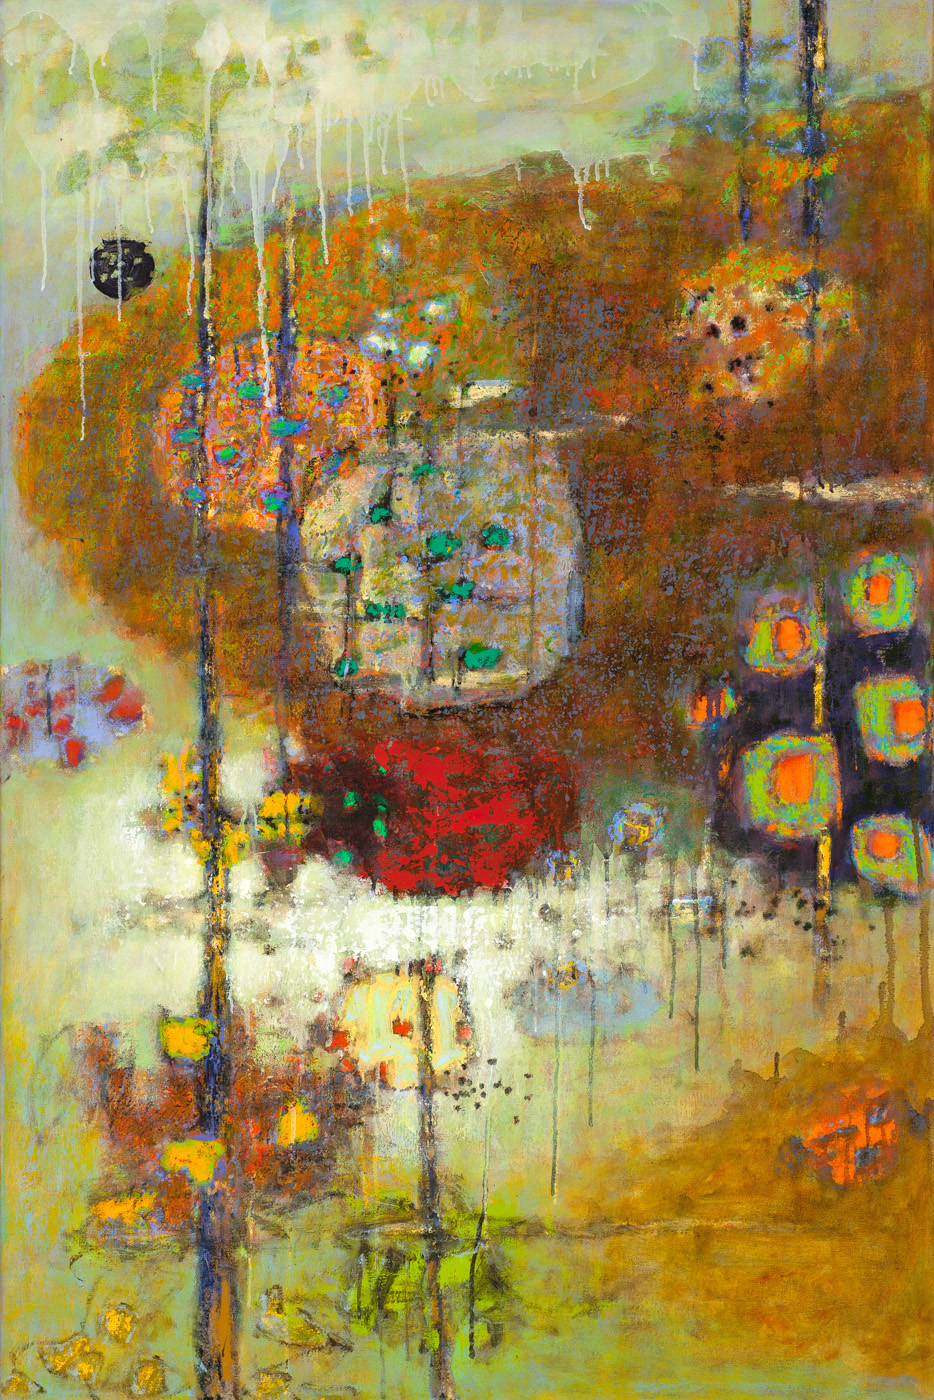 Latitudinal Interaction | oil on canvas | 48 x 32"